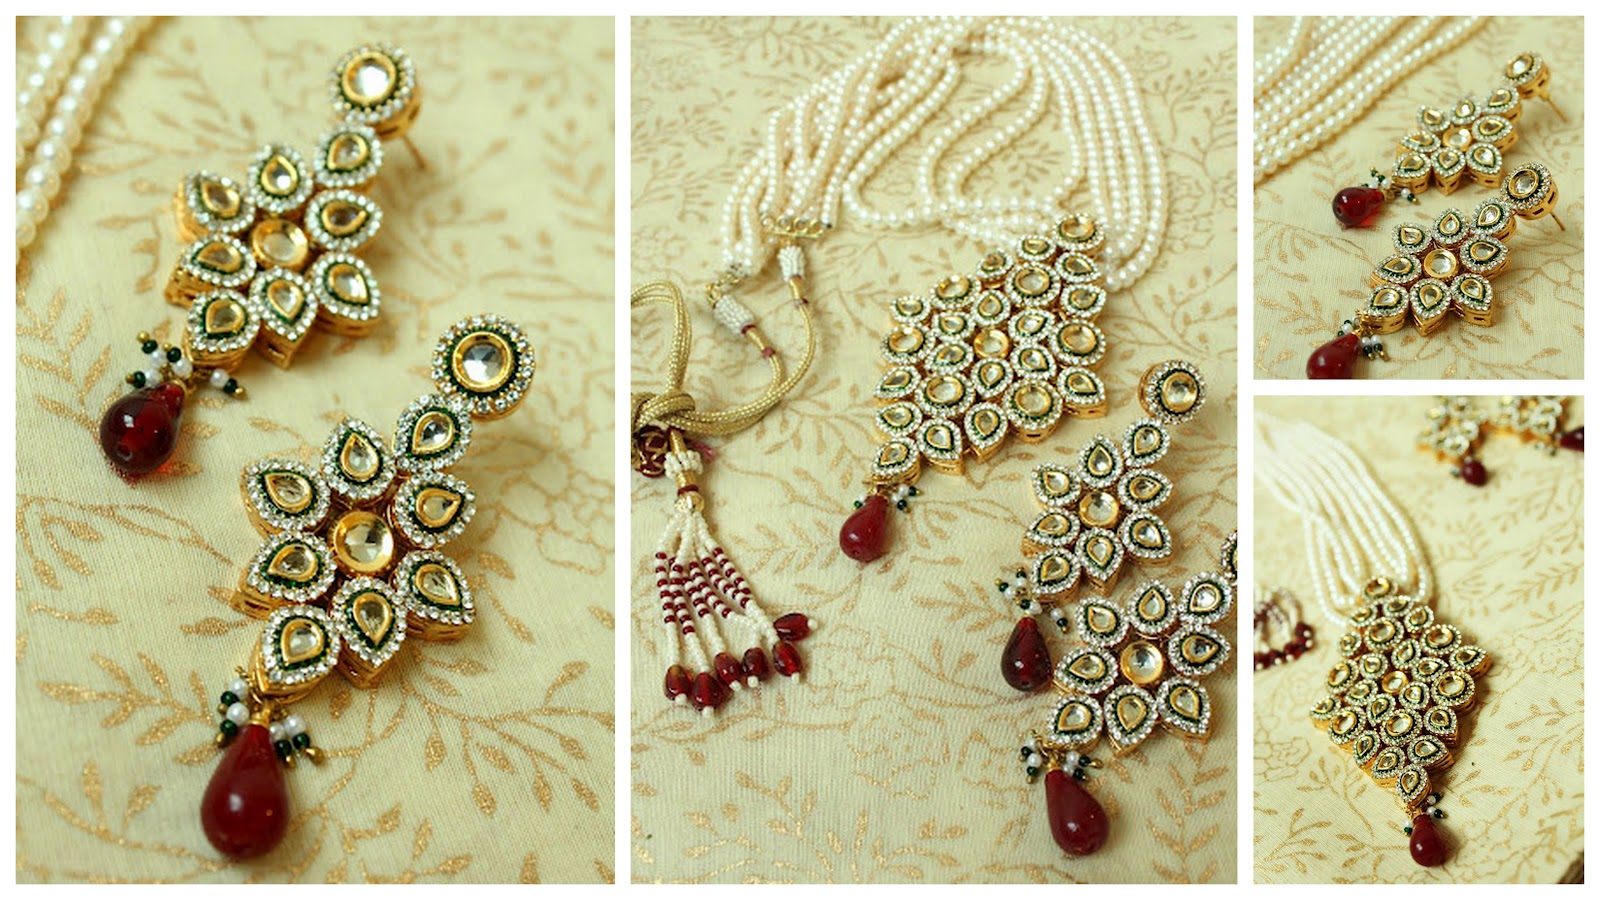 Sets pendant necklace kundan polki earrings necklace jewelry sets pendant necklace kundan polki earrings aloadofball Images